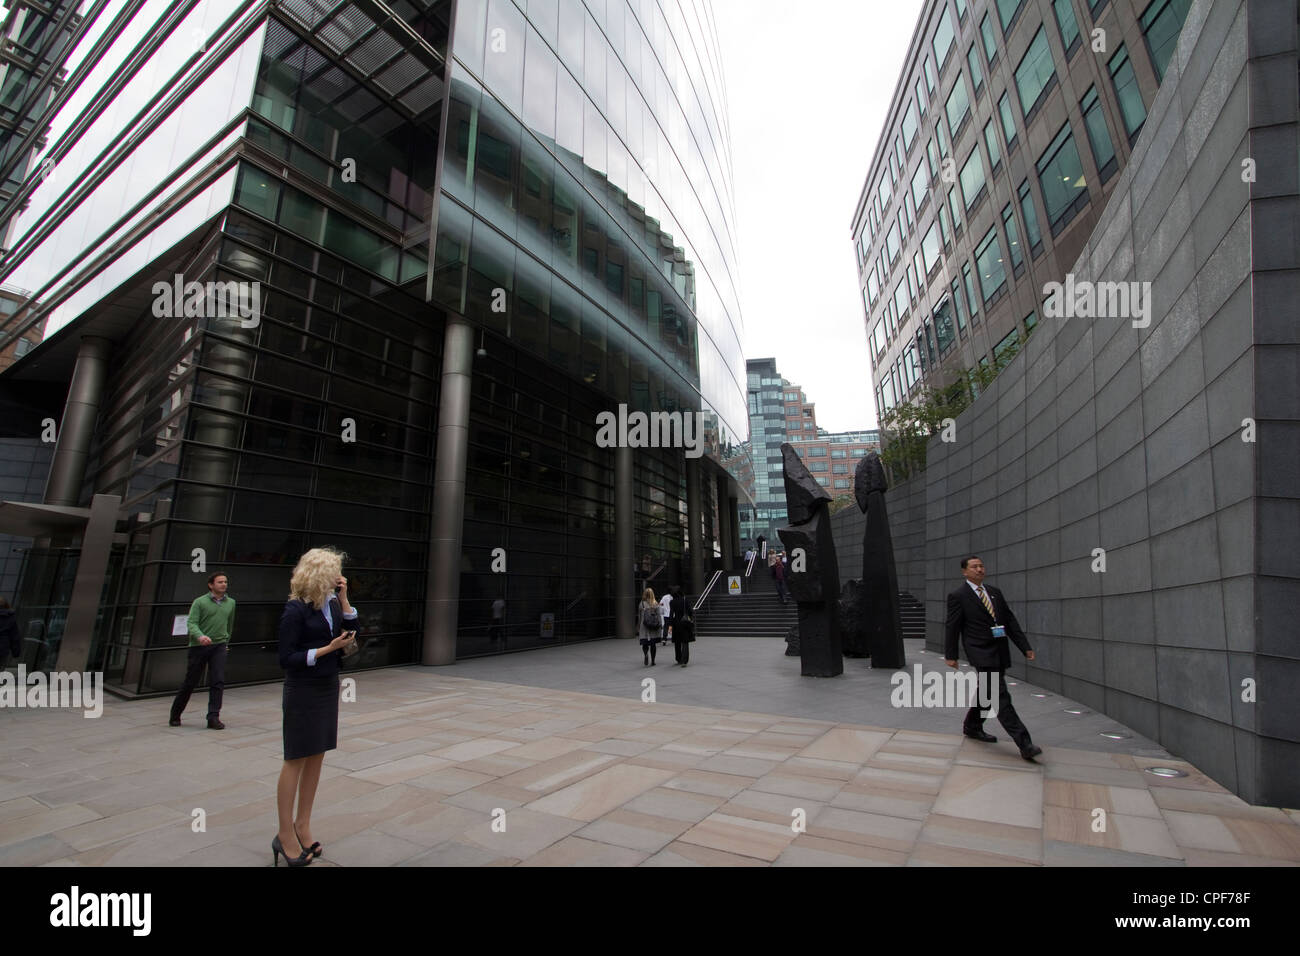 Broadgate office complex - Stock Image